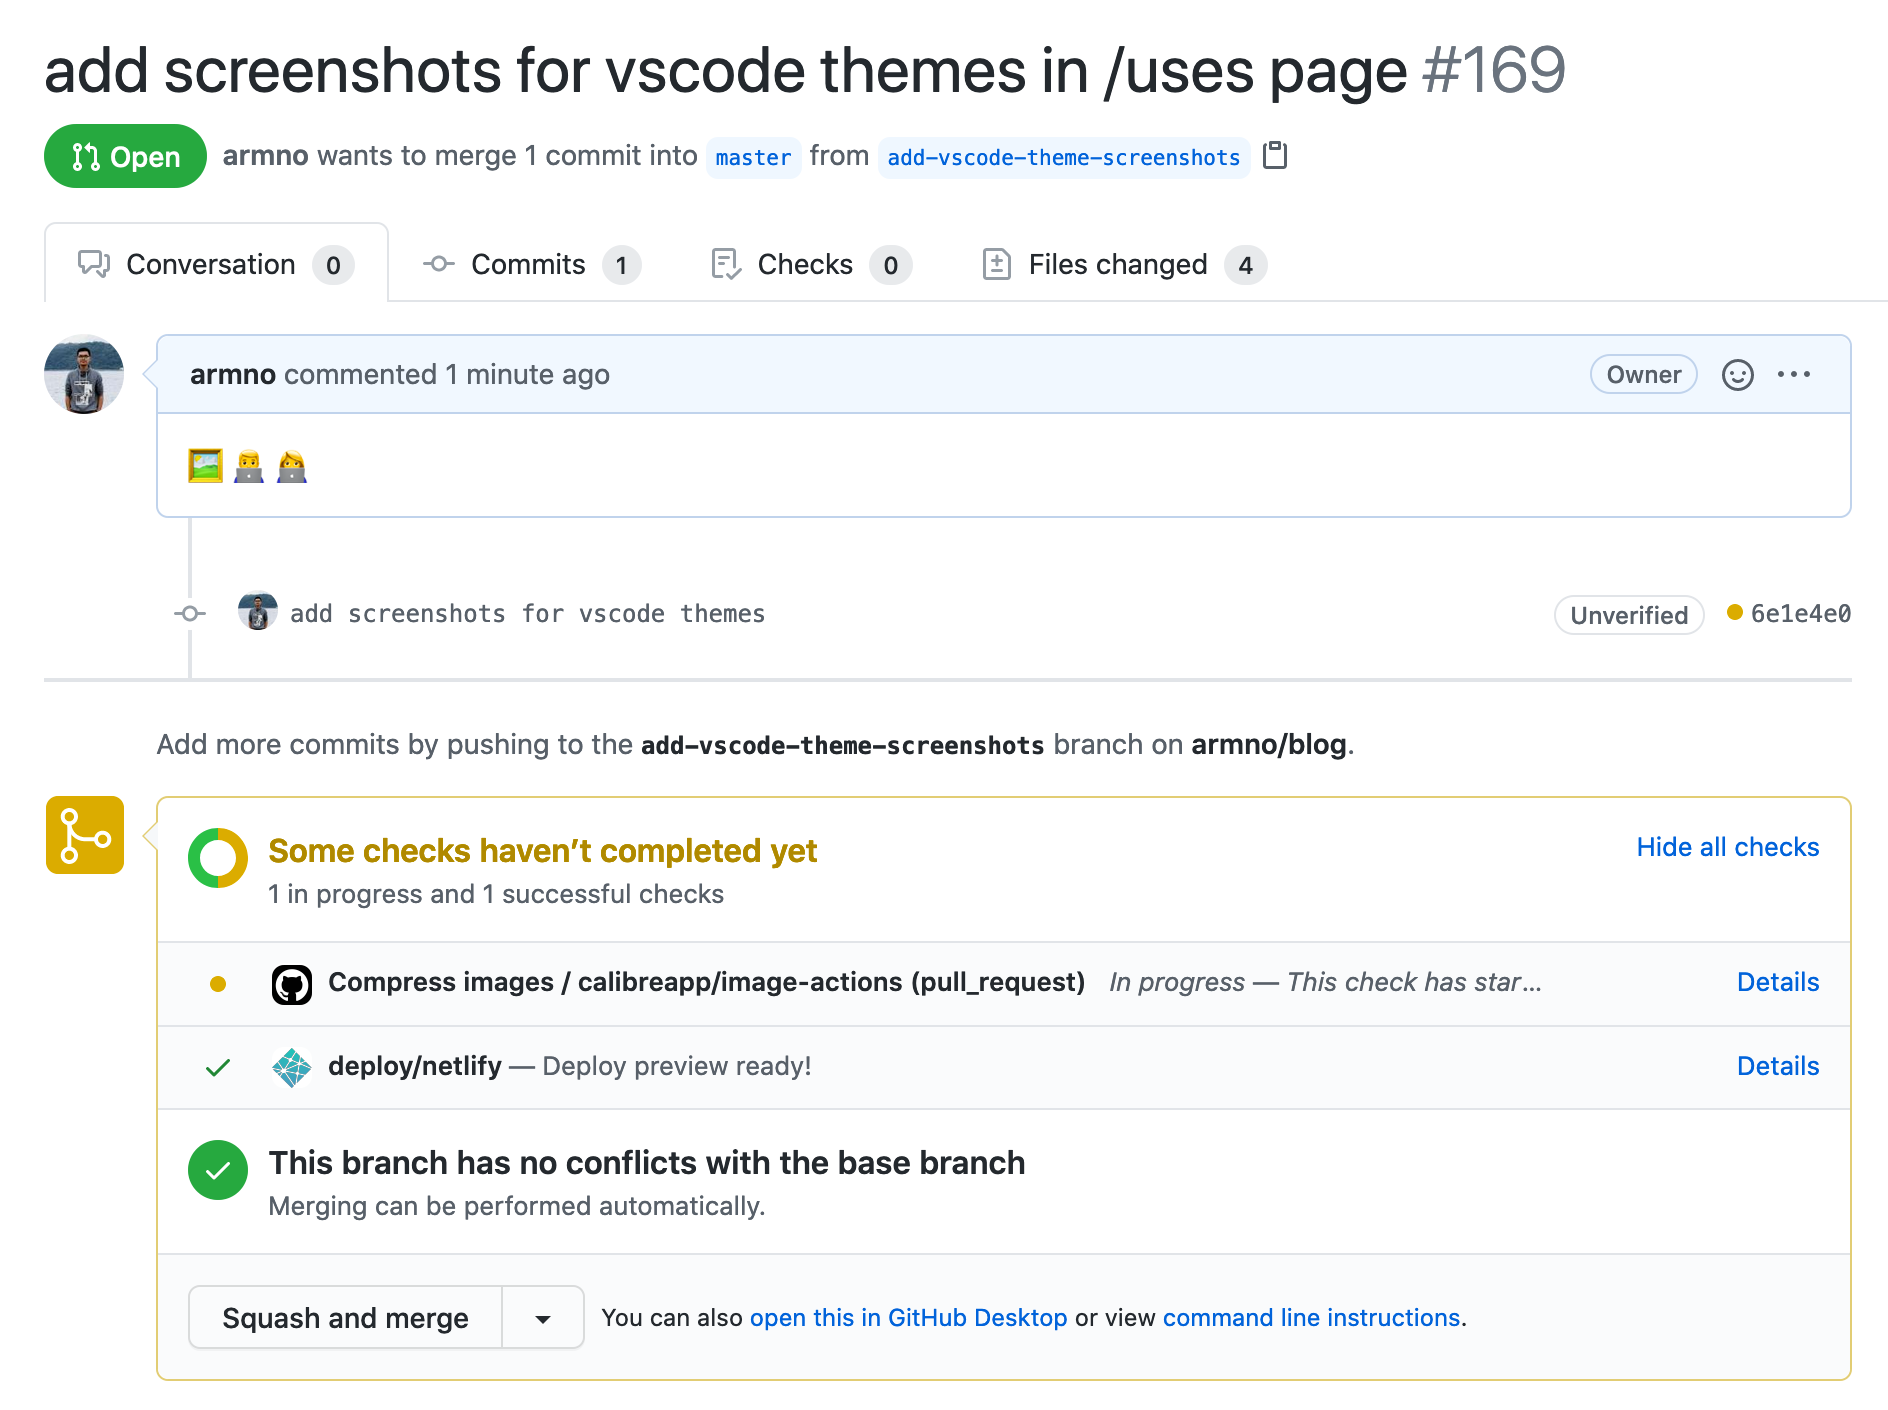 A new pull request is created